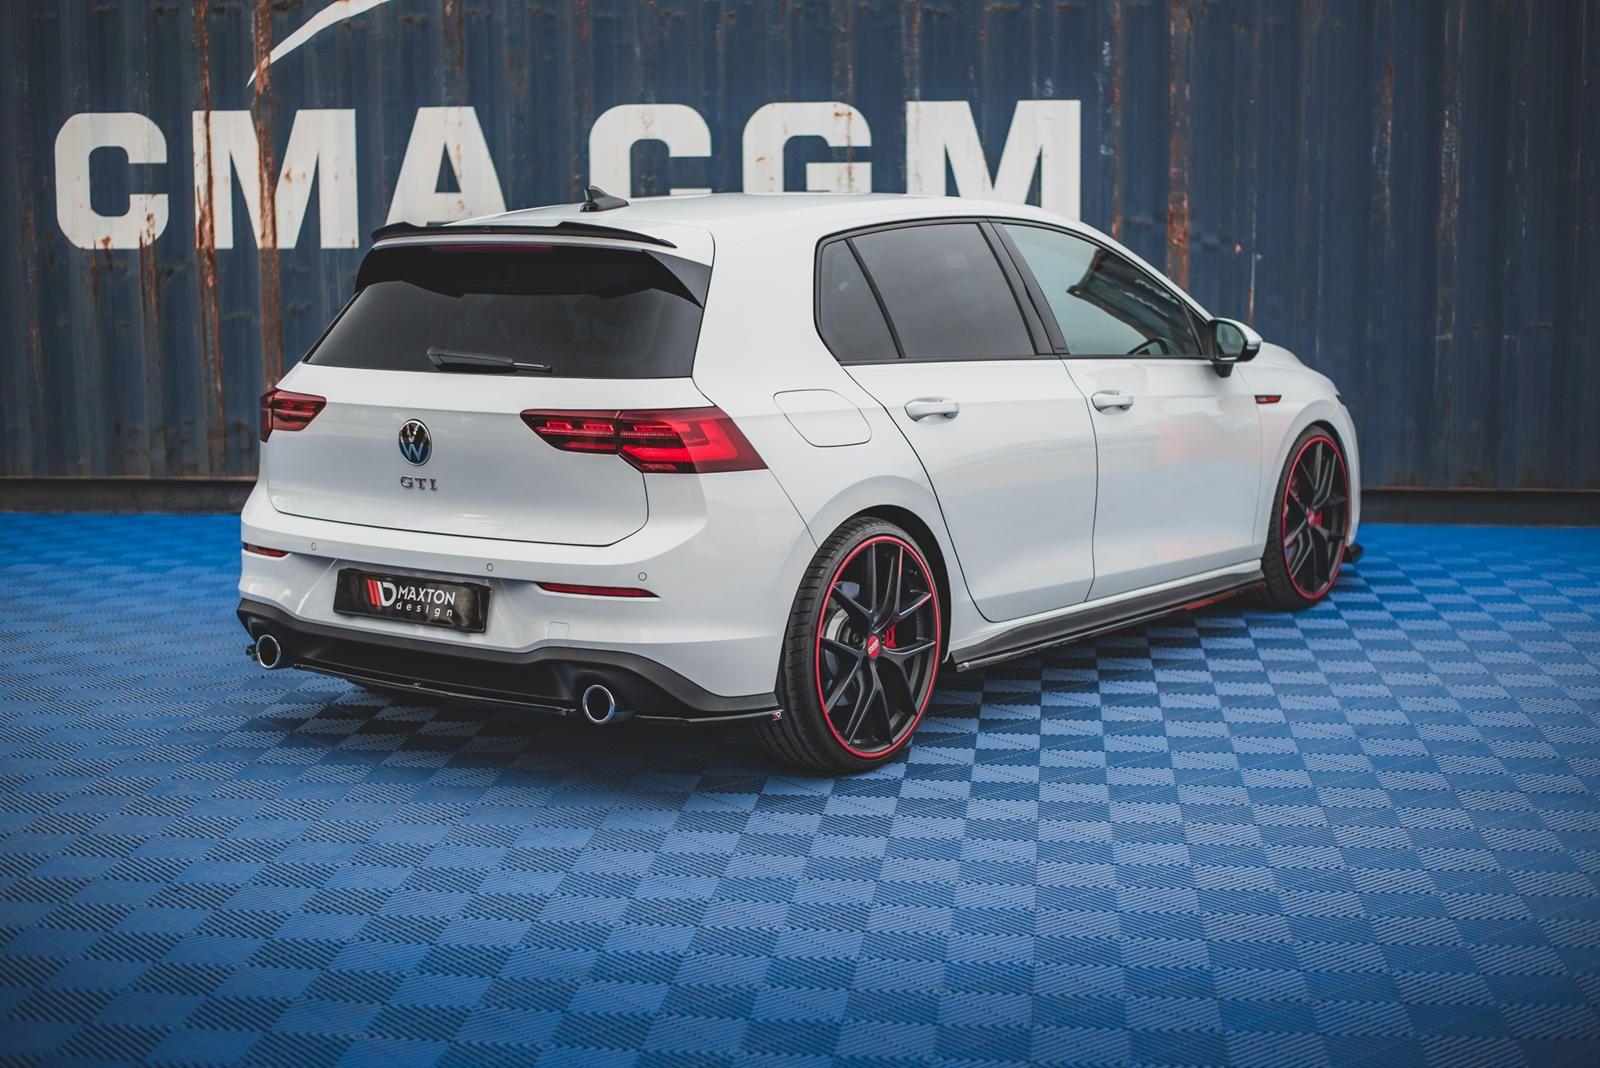 Vw Golf Gti Mk8 Stands Out With New Body Kit Small Changes Make A Big Difference Golf Gti Vw Golf Gti